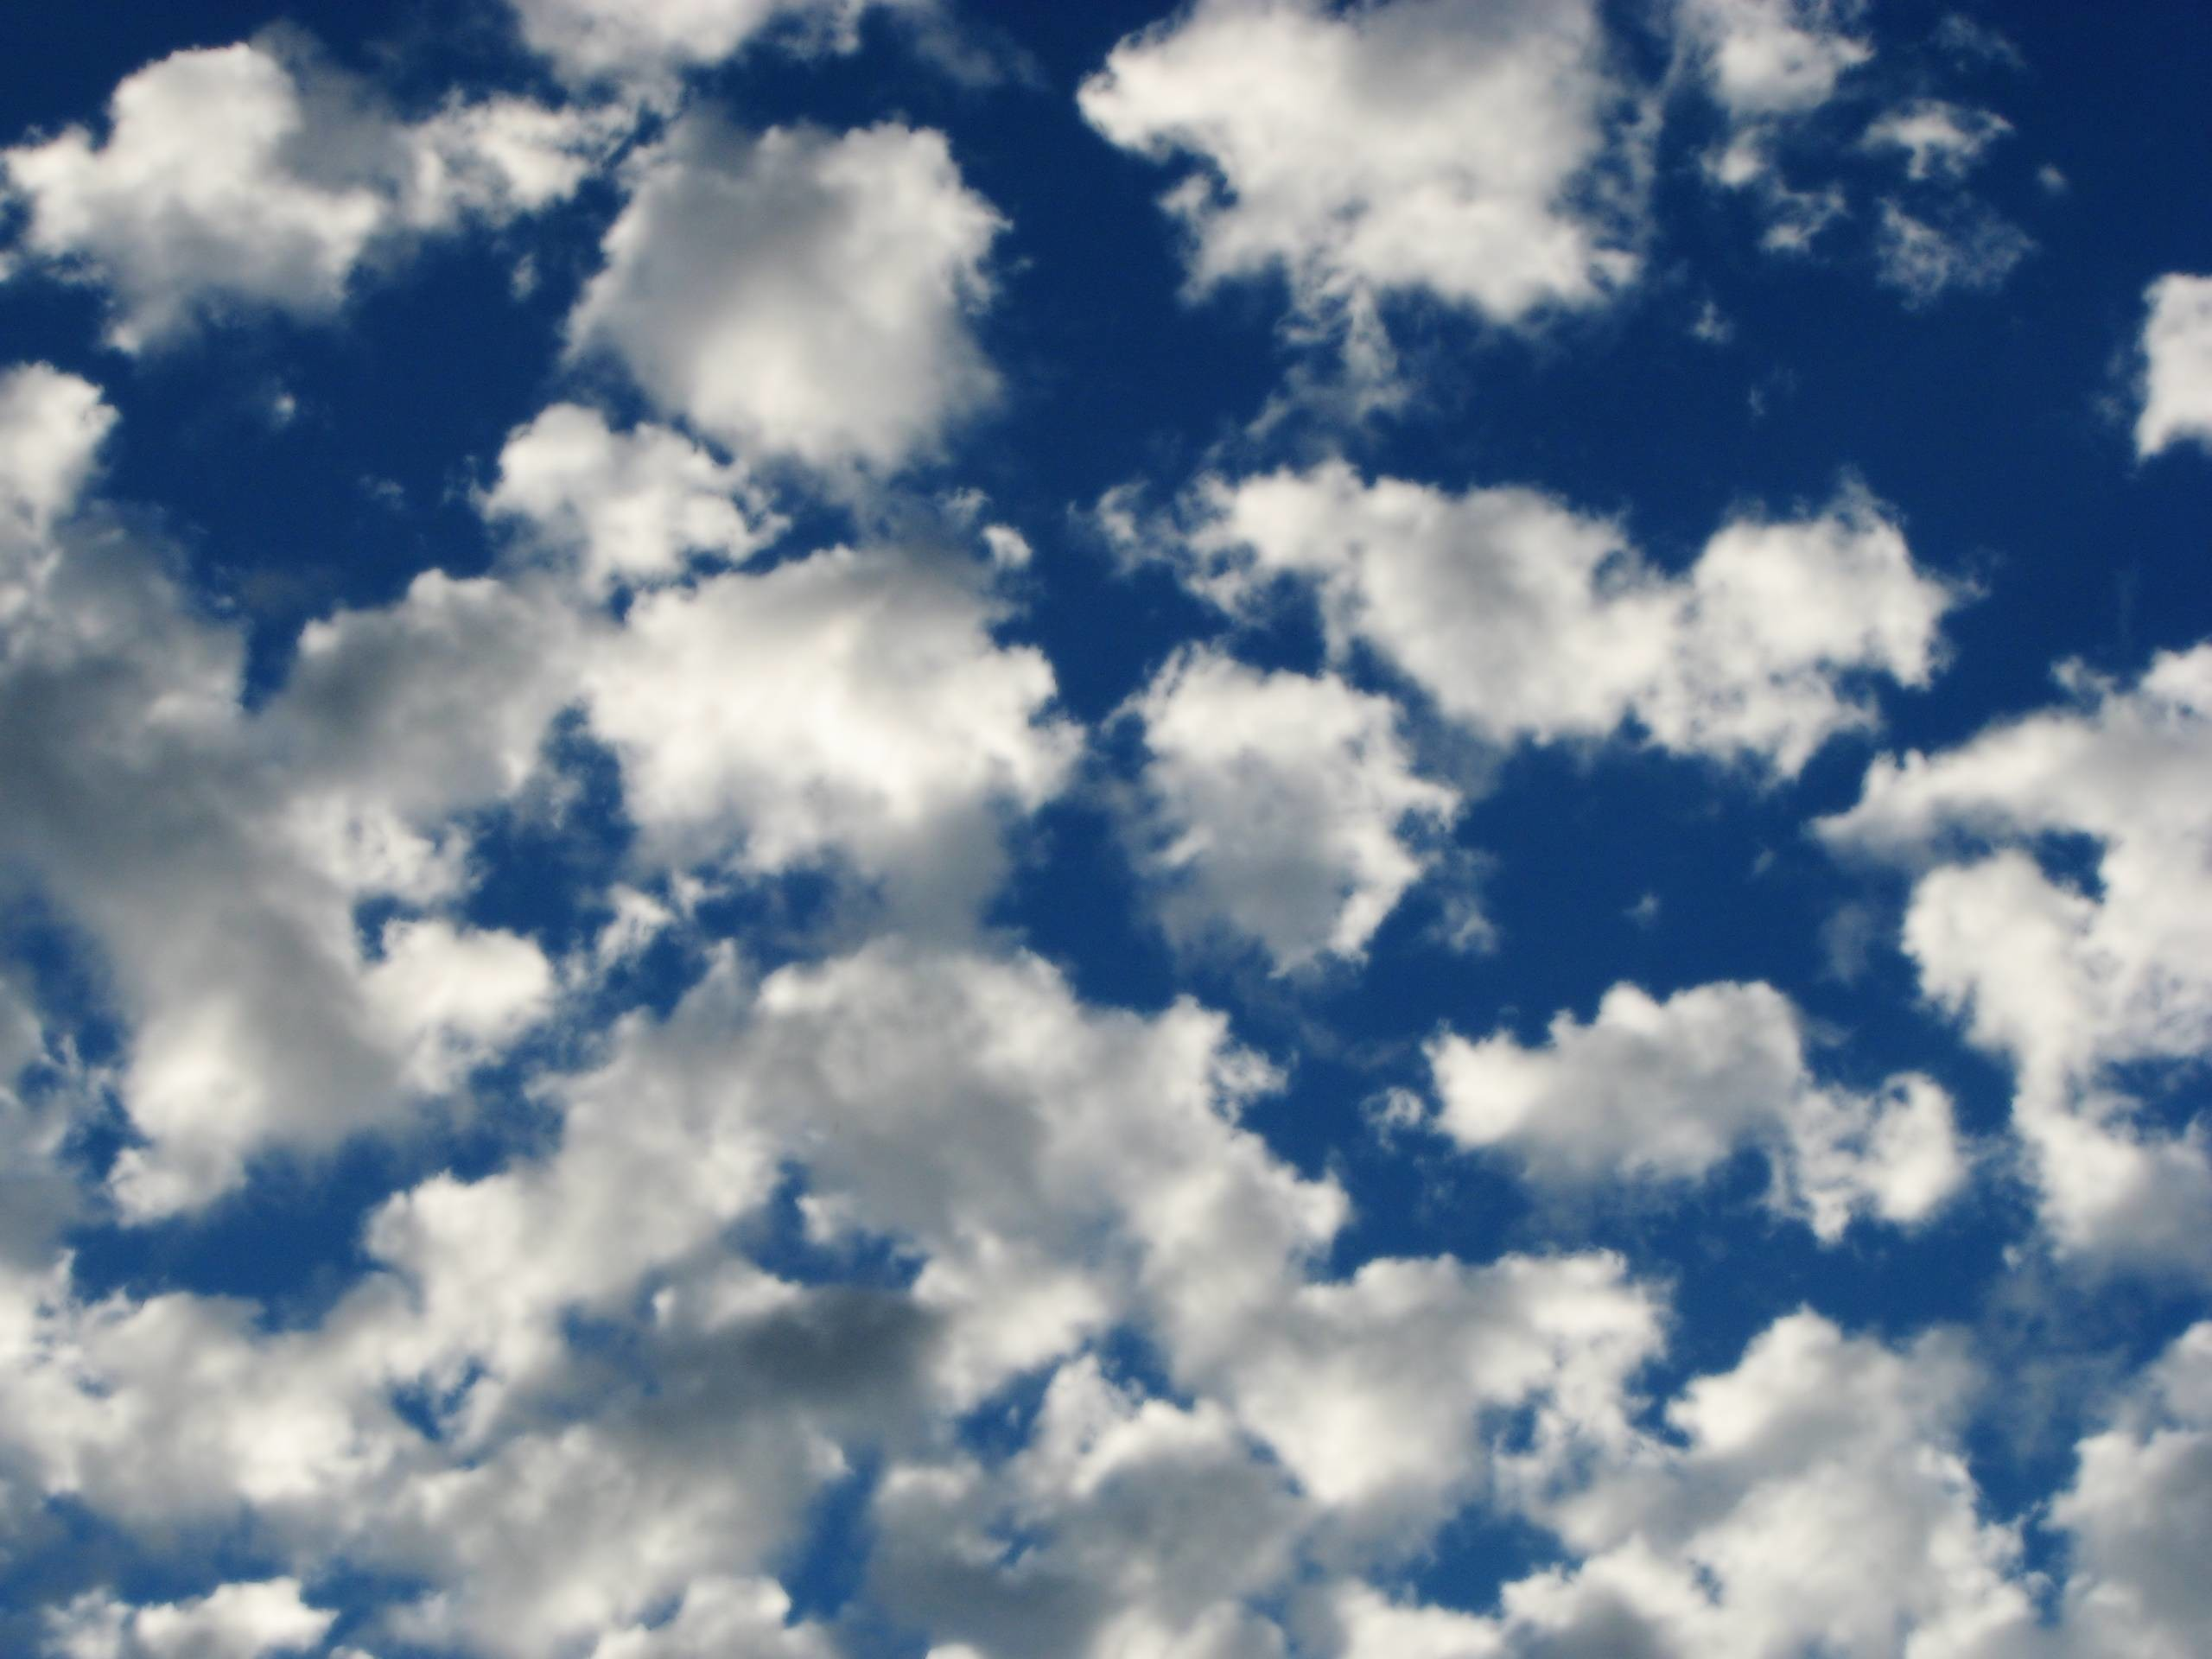 Clouds Wallpapers   HD Wallpapers Base